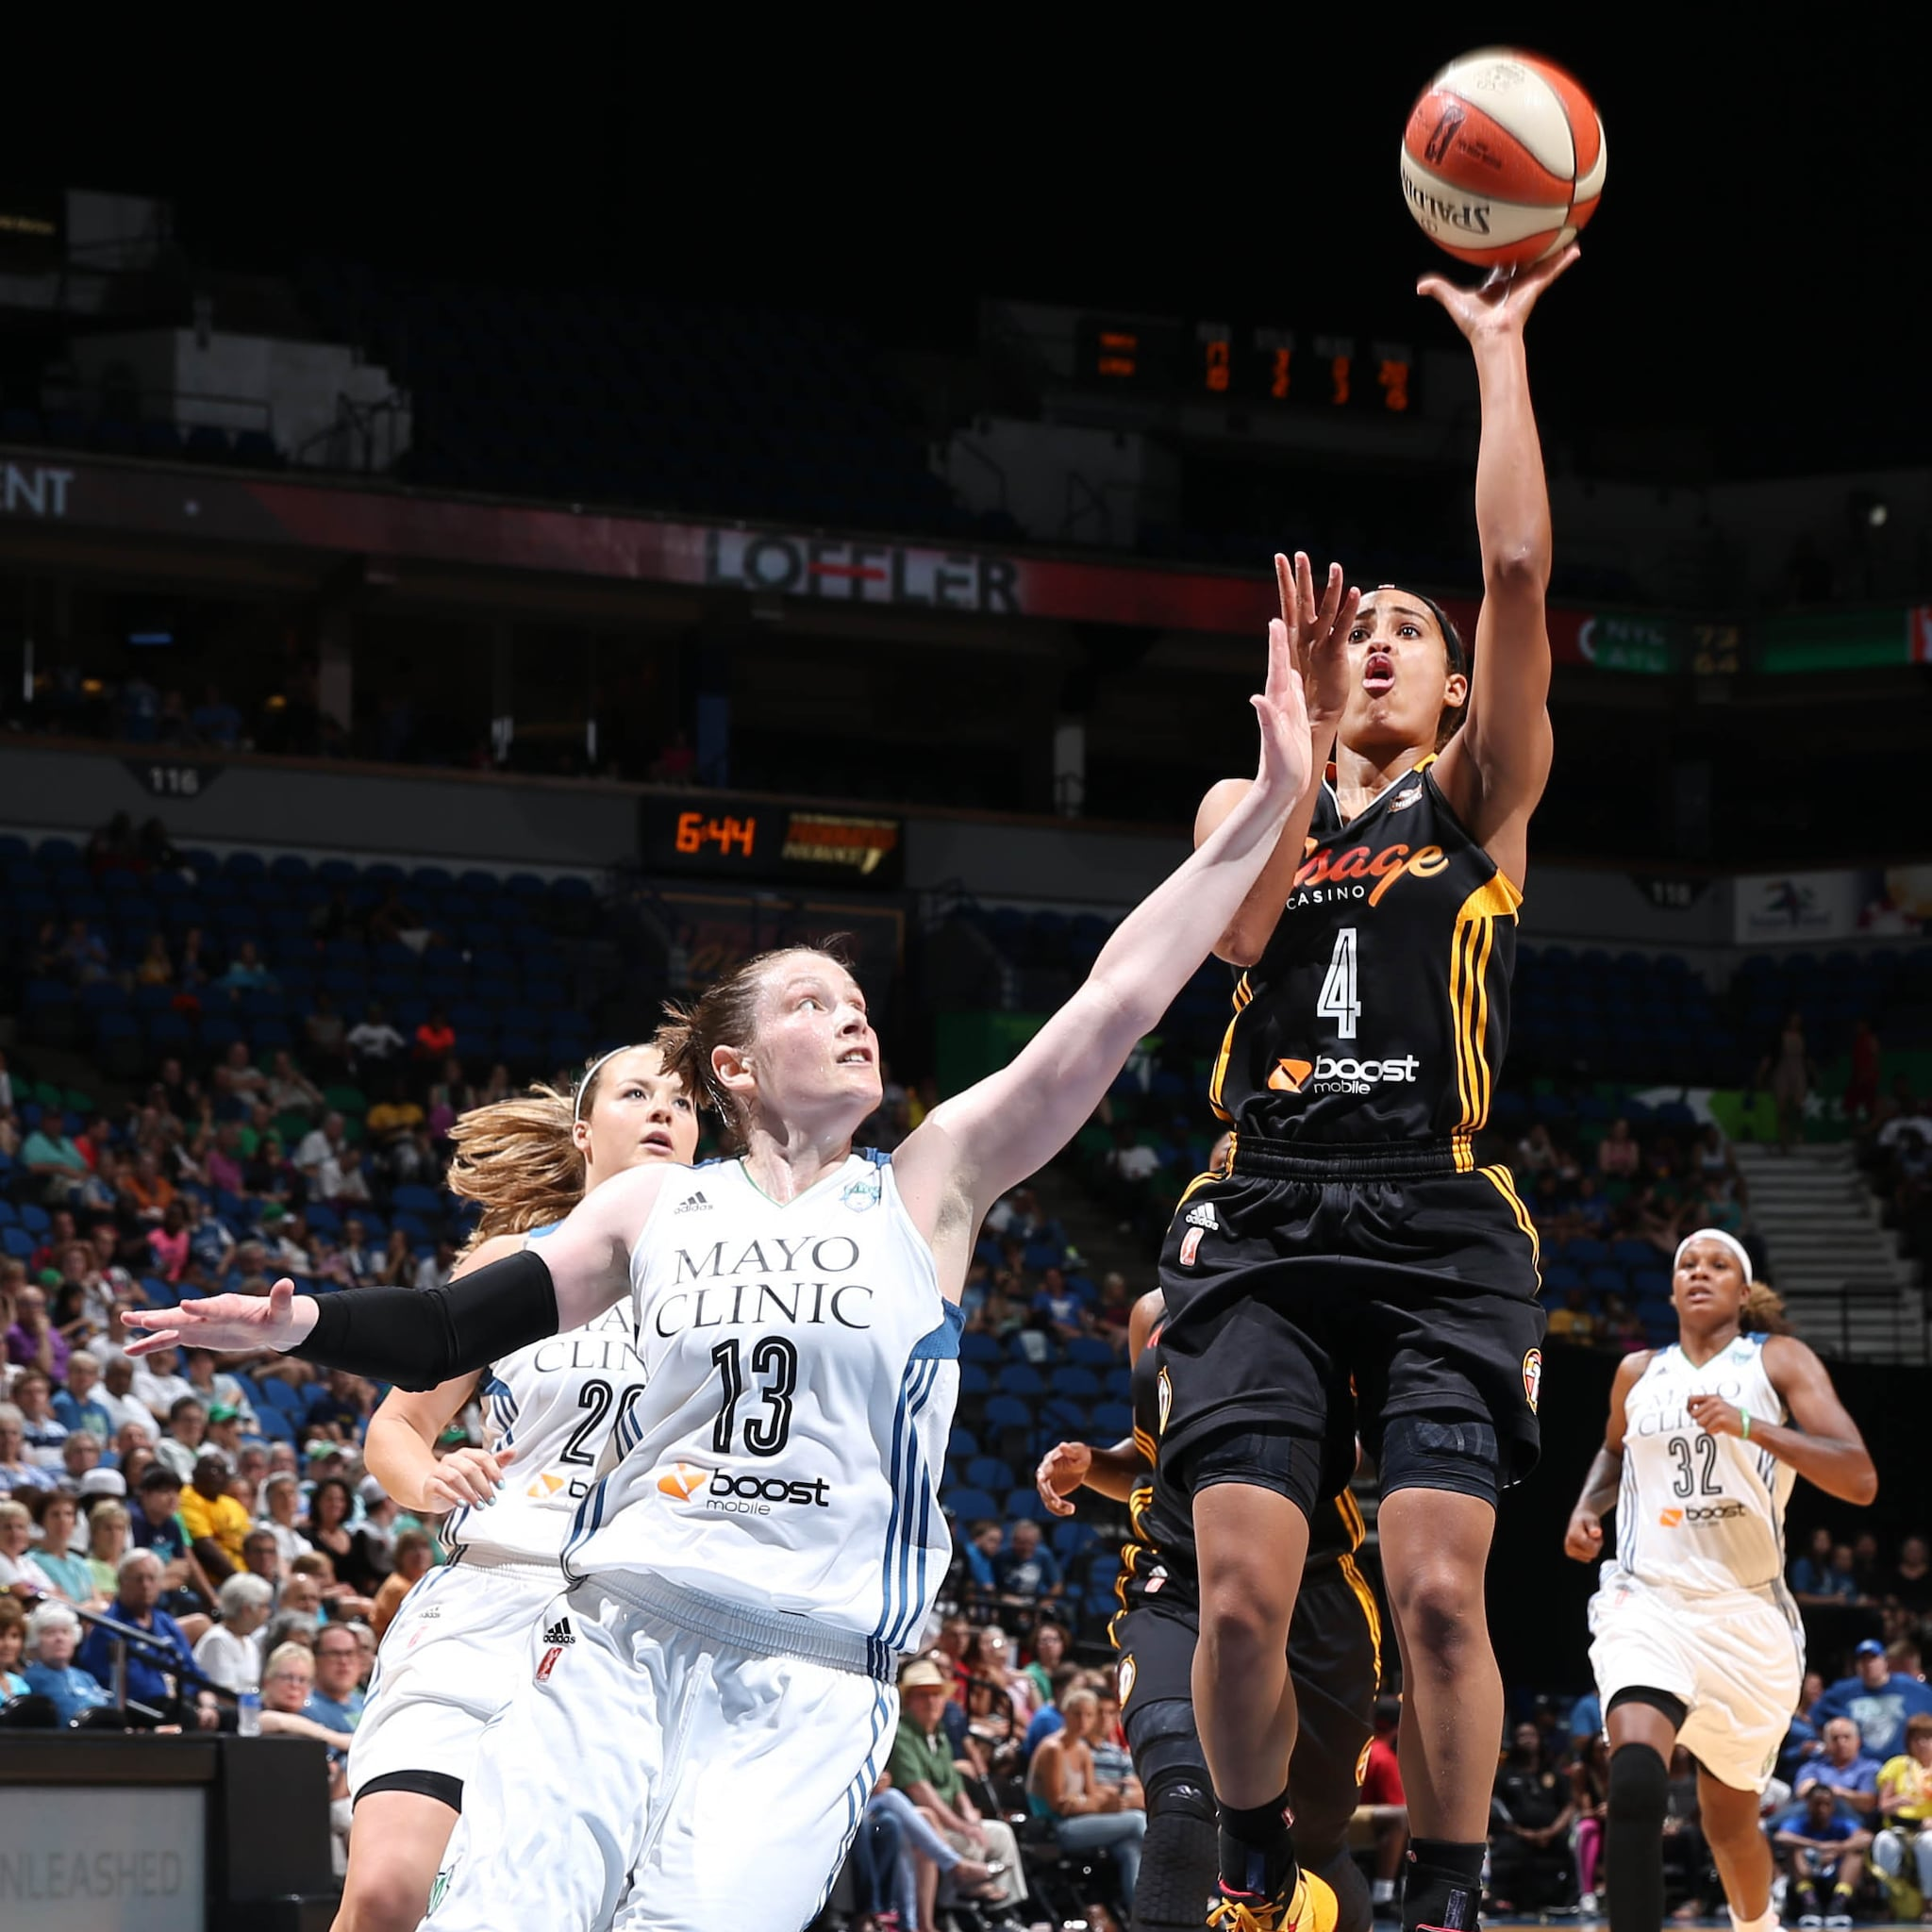 Shock guard Skylar Diggins scored 20 points in the second half to lead the Shock to victory. Diggins finished with 26 points and eight assists.